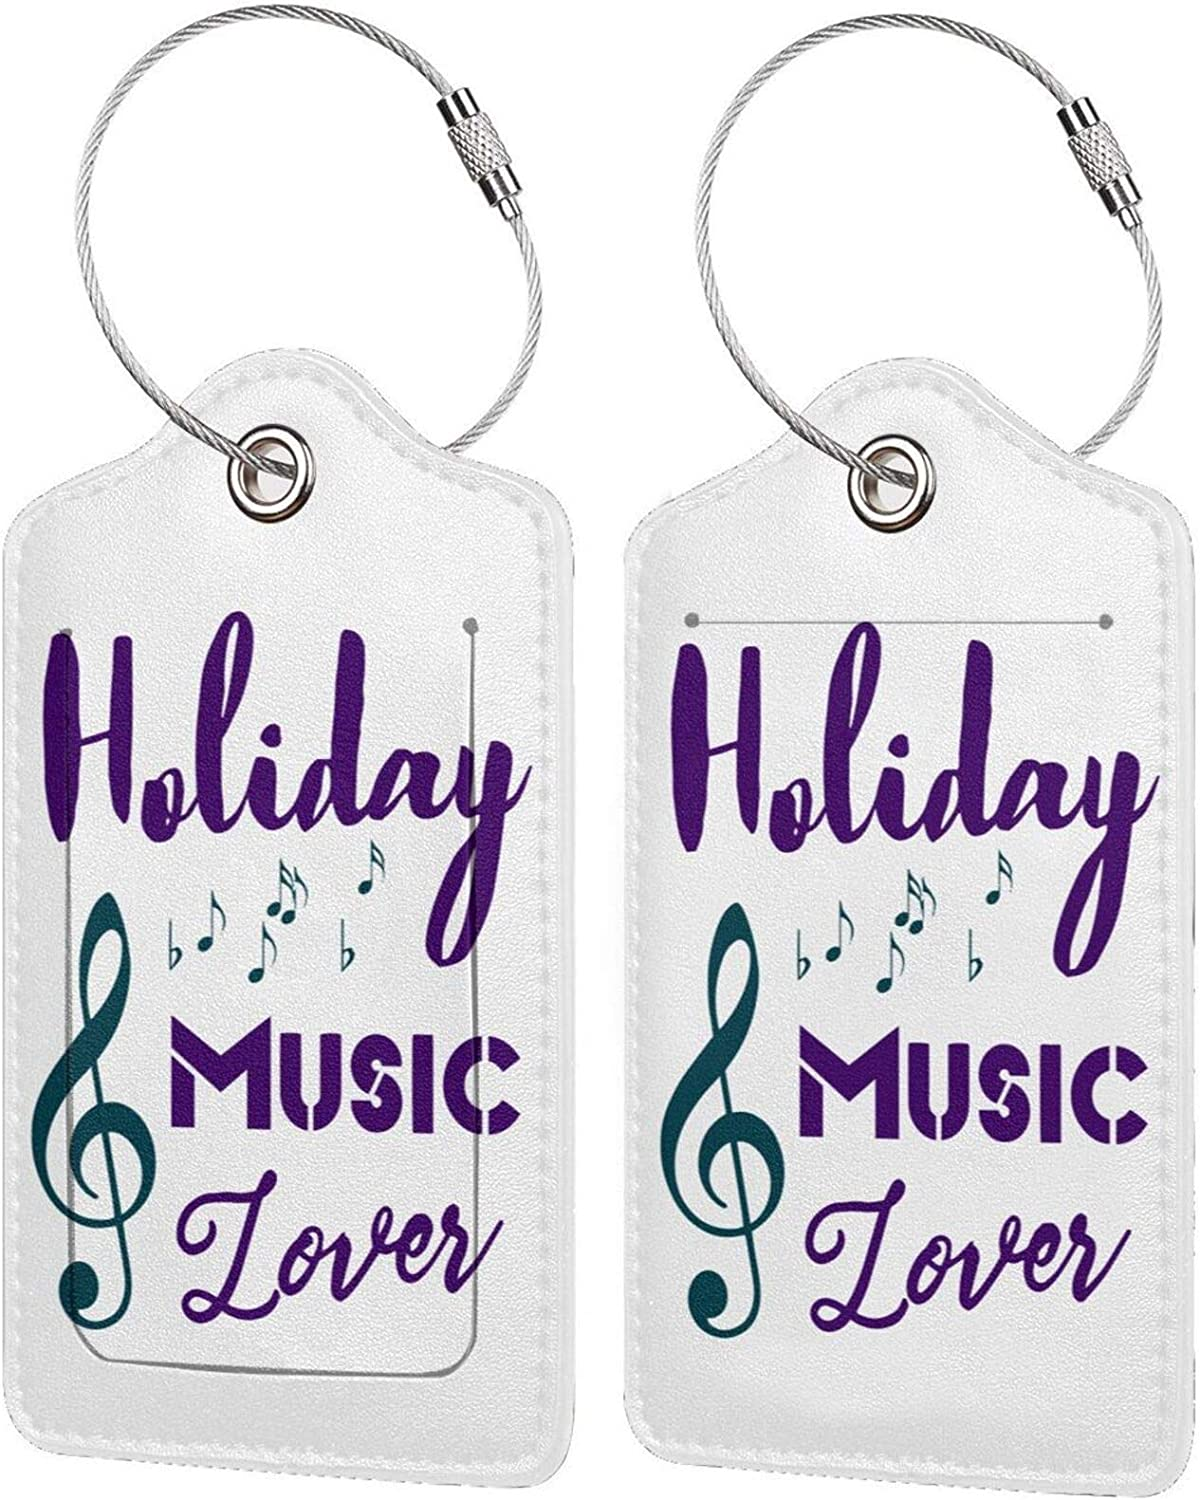 Holiday Music Lover Genuine PU Leather Travel Luggage Max 63% OFF wit Tags Rectangle